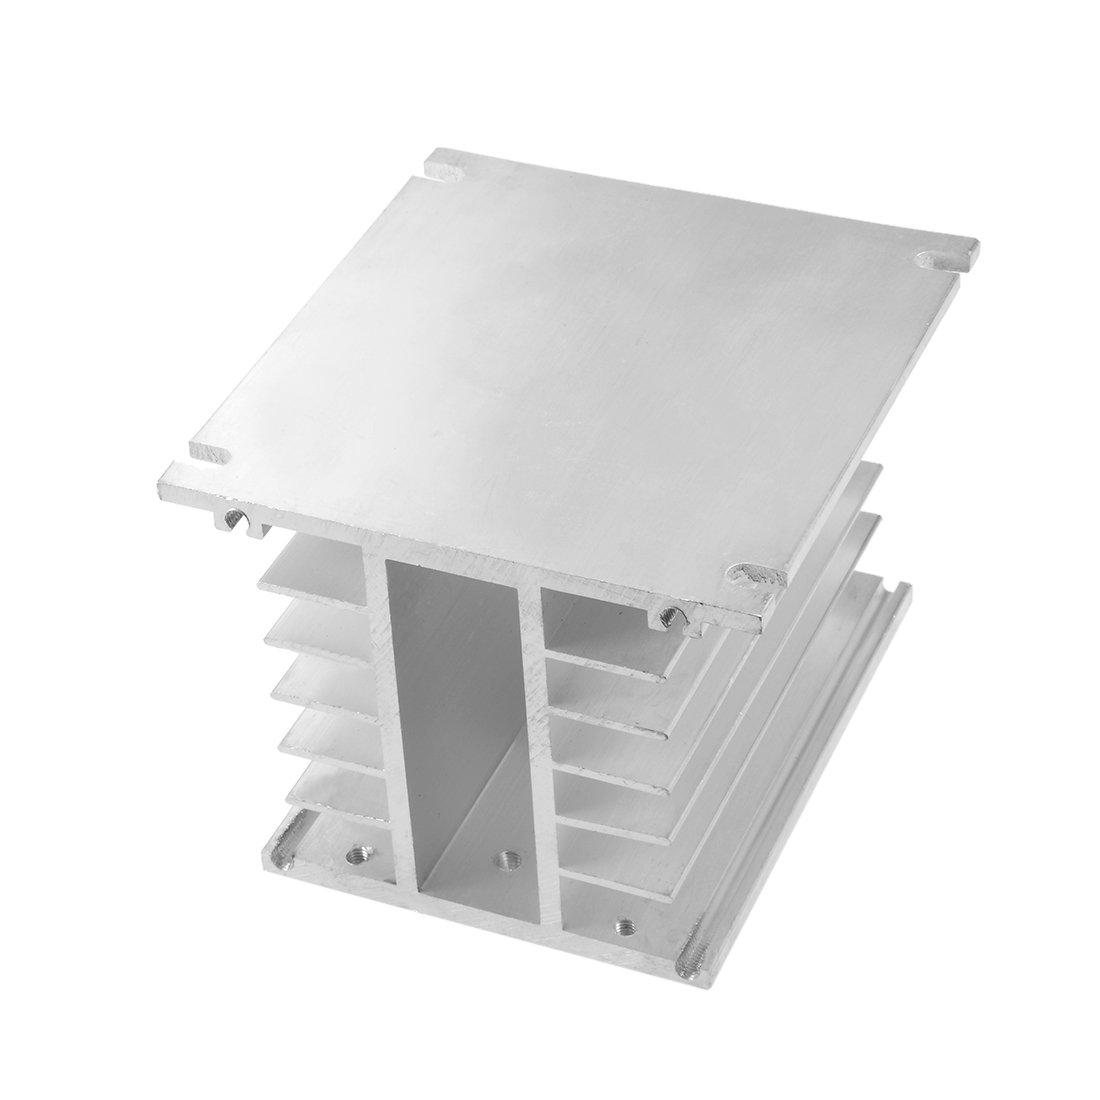 uxcell/® Aluminum Heat Sink SSR Dissipation for Three Phase Solid State Relay 10A-100A